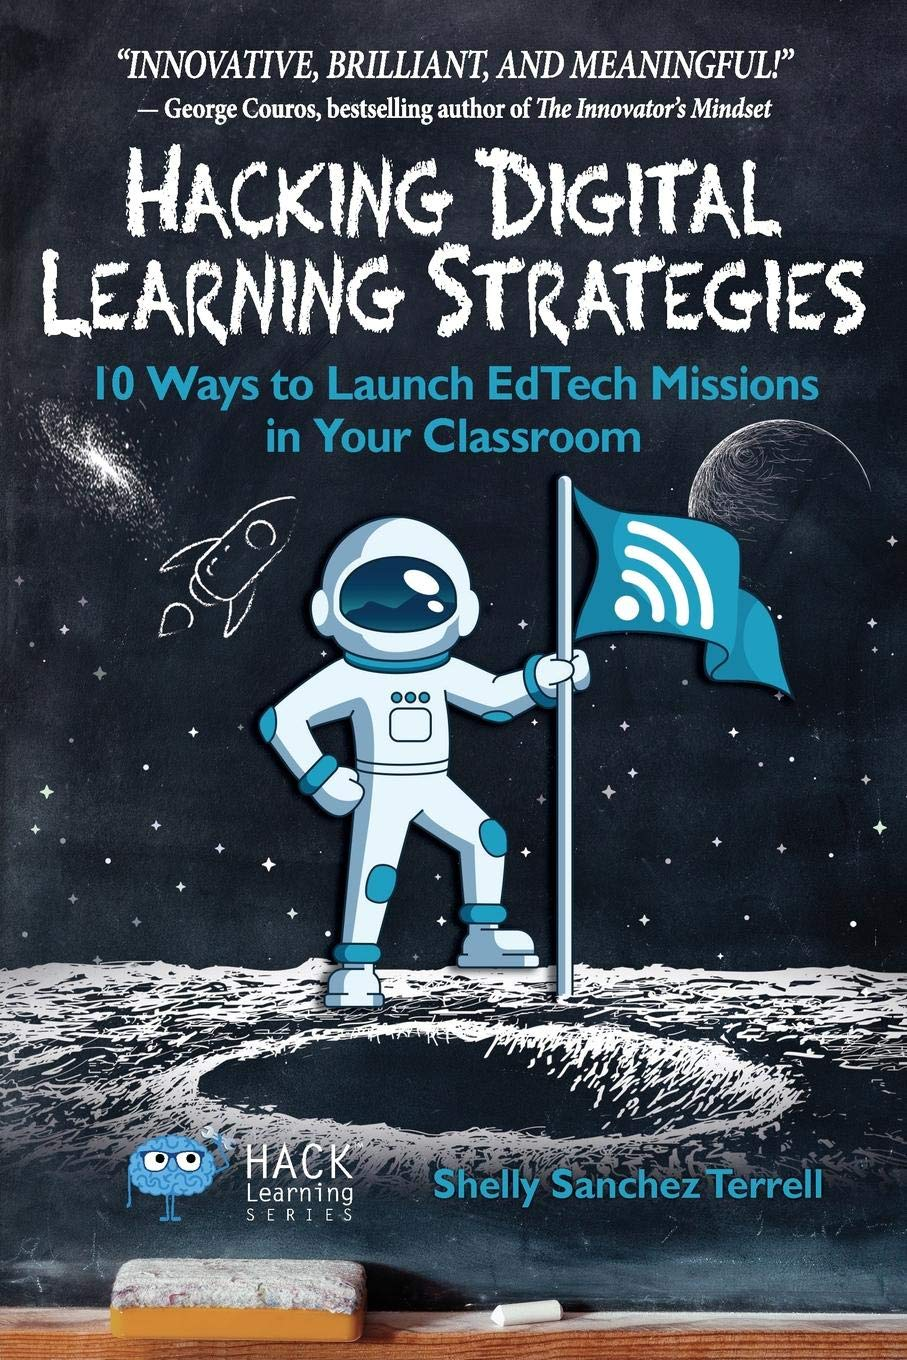 Hacking Digital Learning Strategies: 10 Ways to Launch EdTech Missions in Your Classroom: Volume 13 (Hack Learning Series) por Shelly Sanchez Terrell